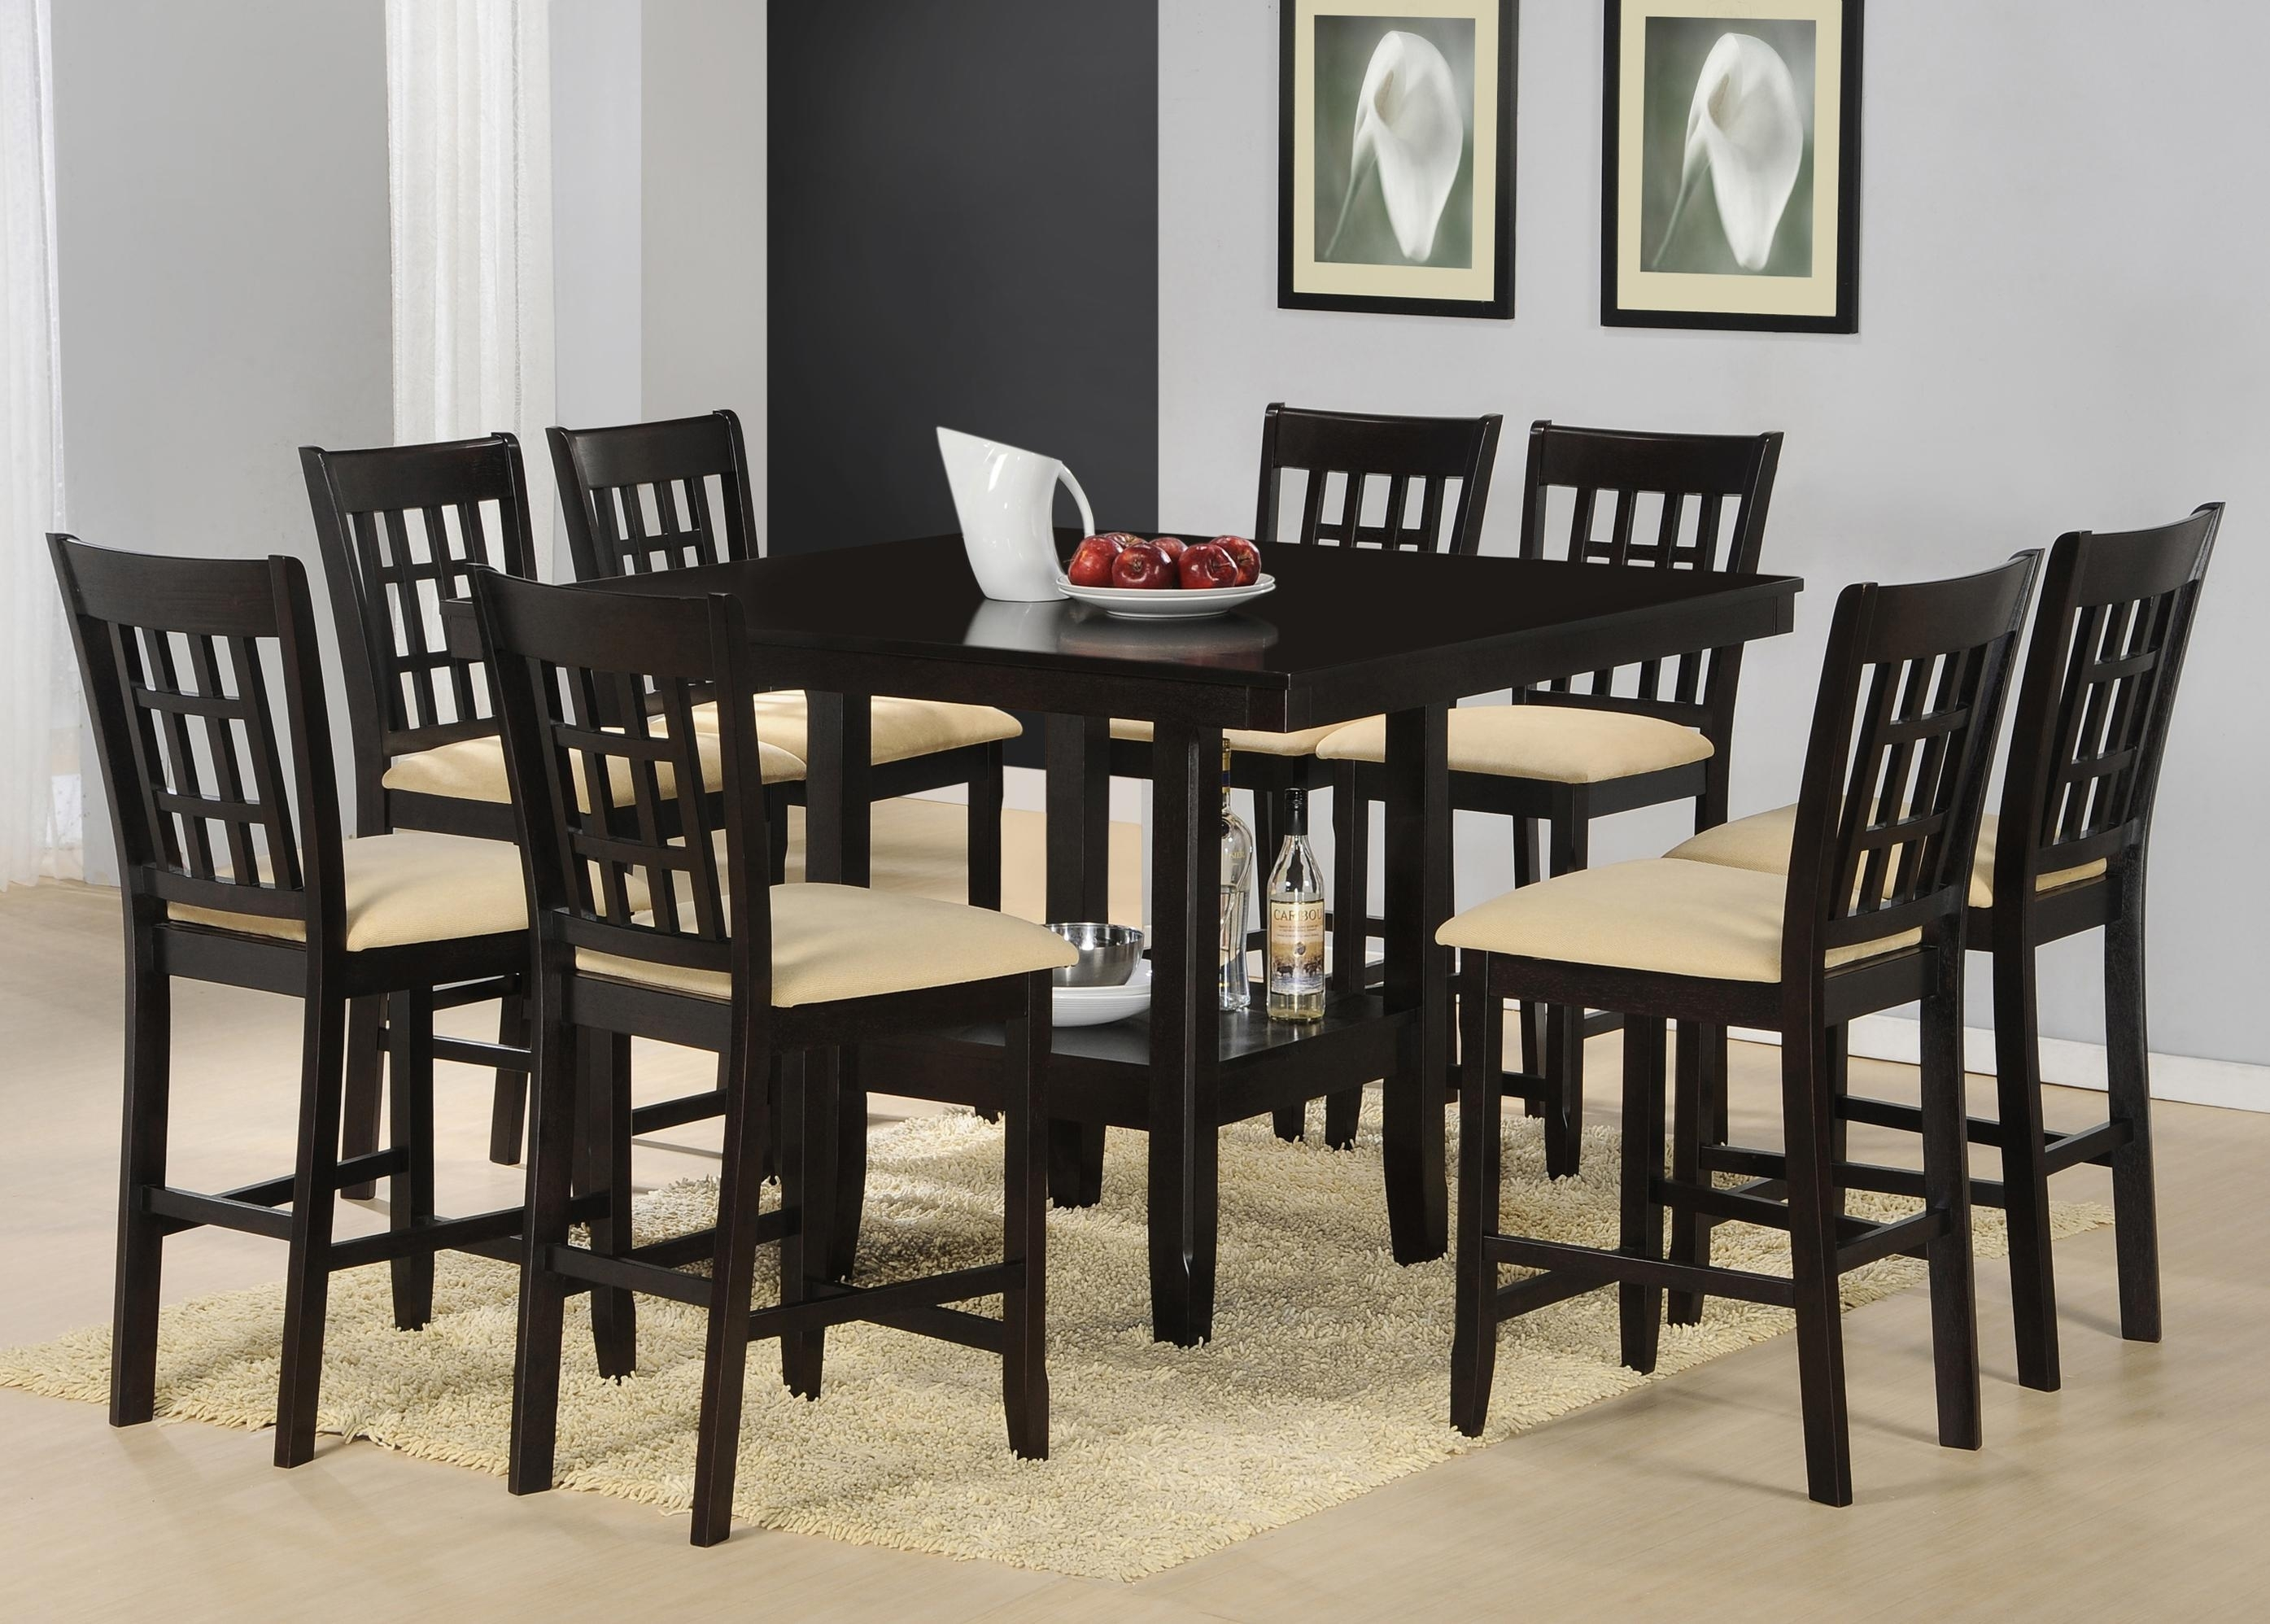 Cheery Caira Piece Extension Set Back Chairs Caira Piece Extension With Regard To Recent Chapleau Ii 9 Piece Extension Dining Table Sets (Image 12 of 20)